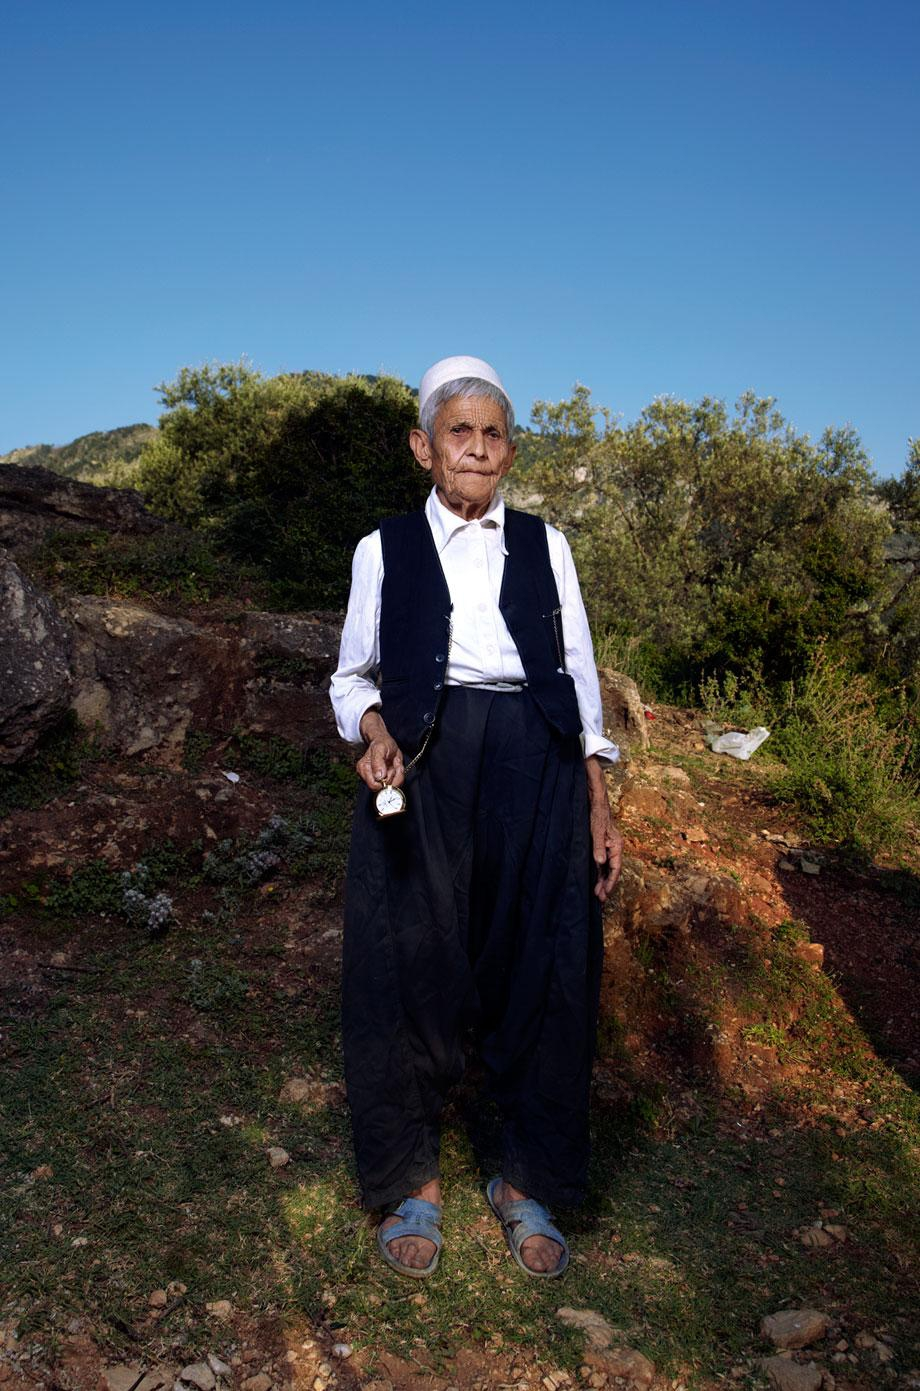 Sworn virgins: Women Who Live as Men in Albania